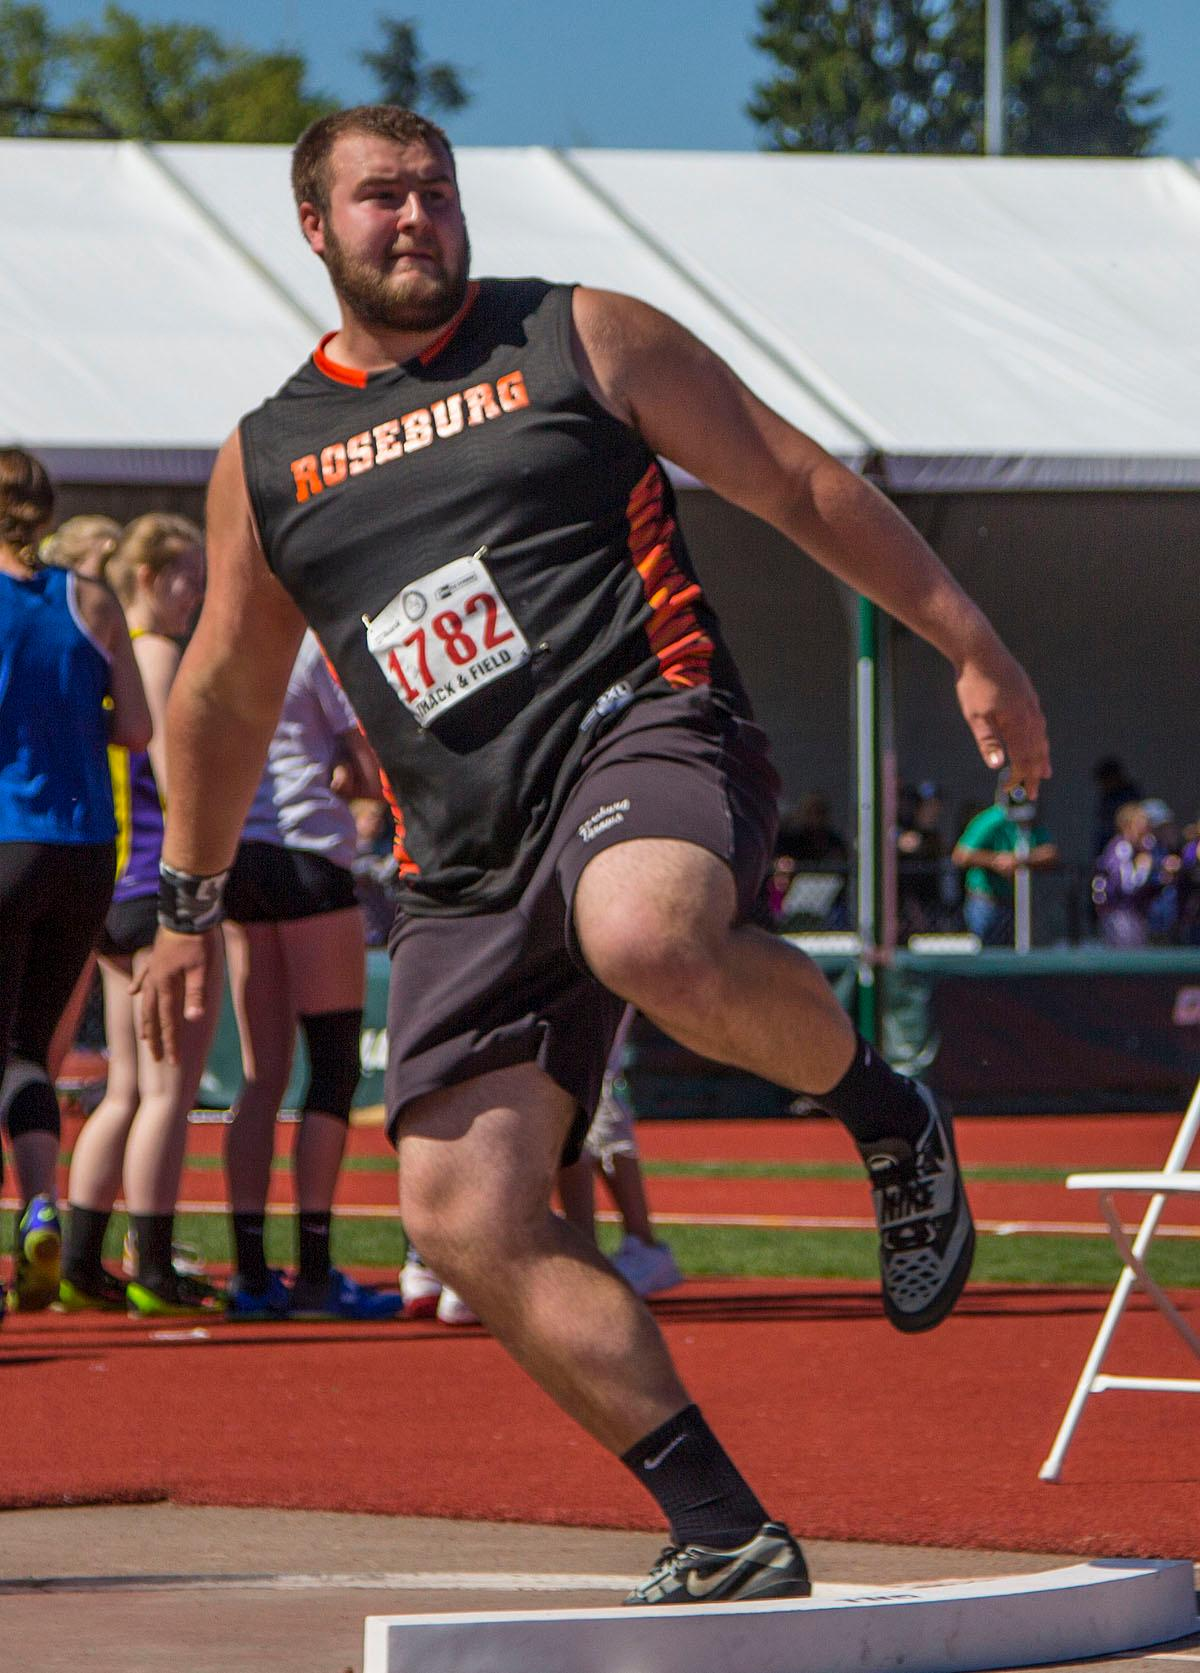 Tyler Sconce from Roseburg High School wins the 6A Boys Shot Put with a distance of 55-09.00 at the OSAA Track and Field State Championships at Hayward Field. Photo by Nichole Louchios, Oregon News Lab.